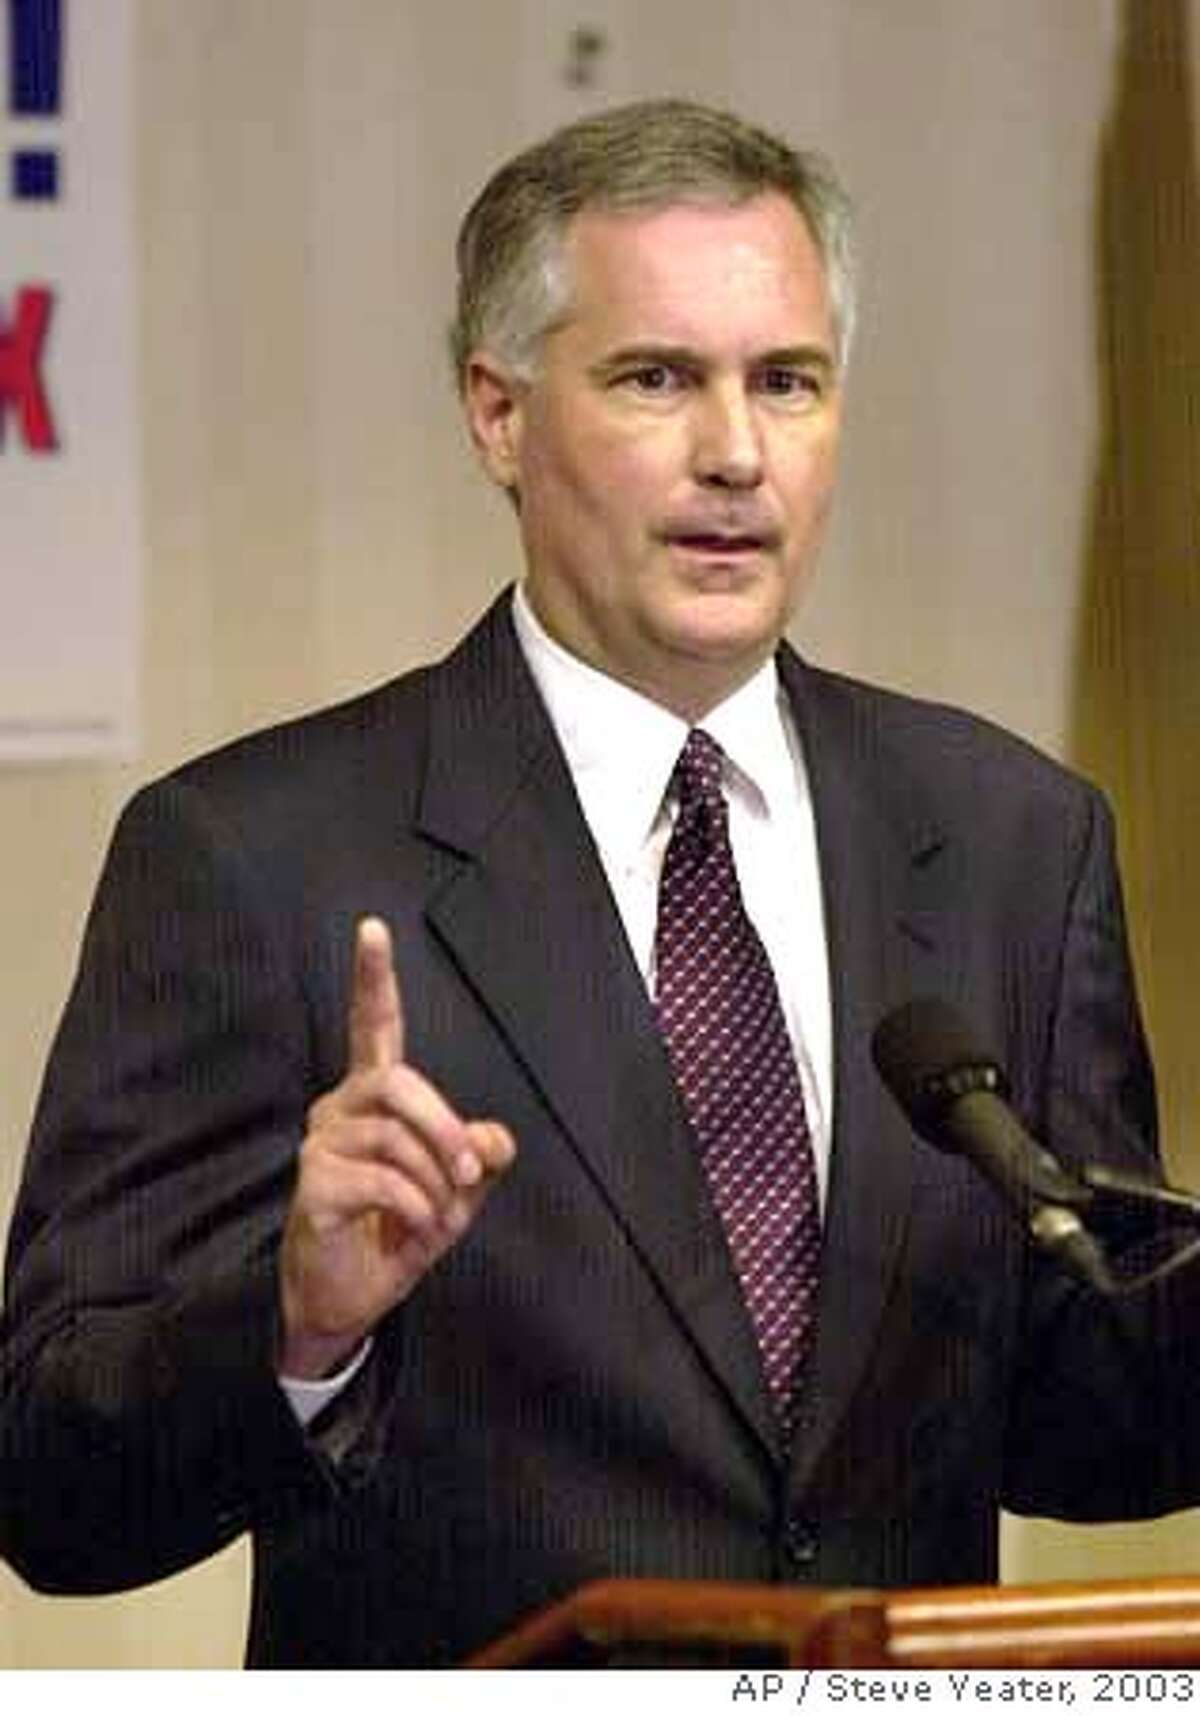 ###Live Caption:Republican candidate for governor state Sen. Tom McClintock, R-Nothridge, answers questions from reporters after he introduced his new television commercial during a news conference in Sacramento, Calif., on Friday, Sept. 26, 2003.(AP Photo/Steve Yeater)###Caption History:Republican candidate for governor state Sen. Tom McClintock, R-Nothridge, answers questions from reporters after he introduced his new television commercial during a news conference in Sacramento, Calif., on Friday, Sept. 26, 2003.(AP Photo/Steve Yeater) CAT w/MONEY27 Cruz Bustamante Ran on: 10-22-2006 Ran on: 10-23-2006###Notes:14p9x3.5inch###Special Instructions:CAT ###11/18/2003##5star#A18#0421410271